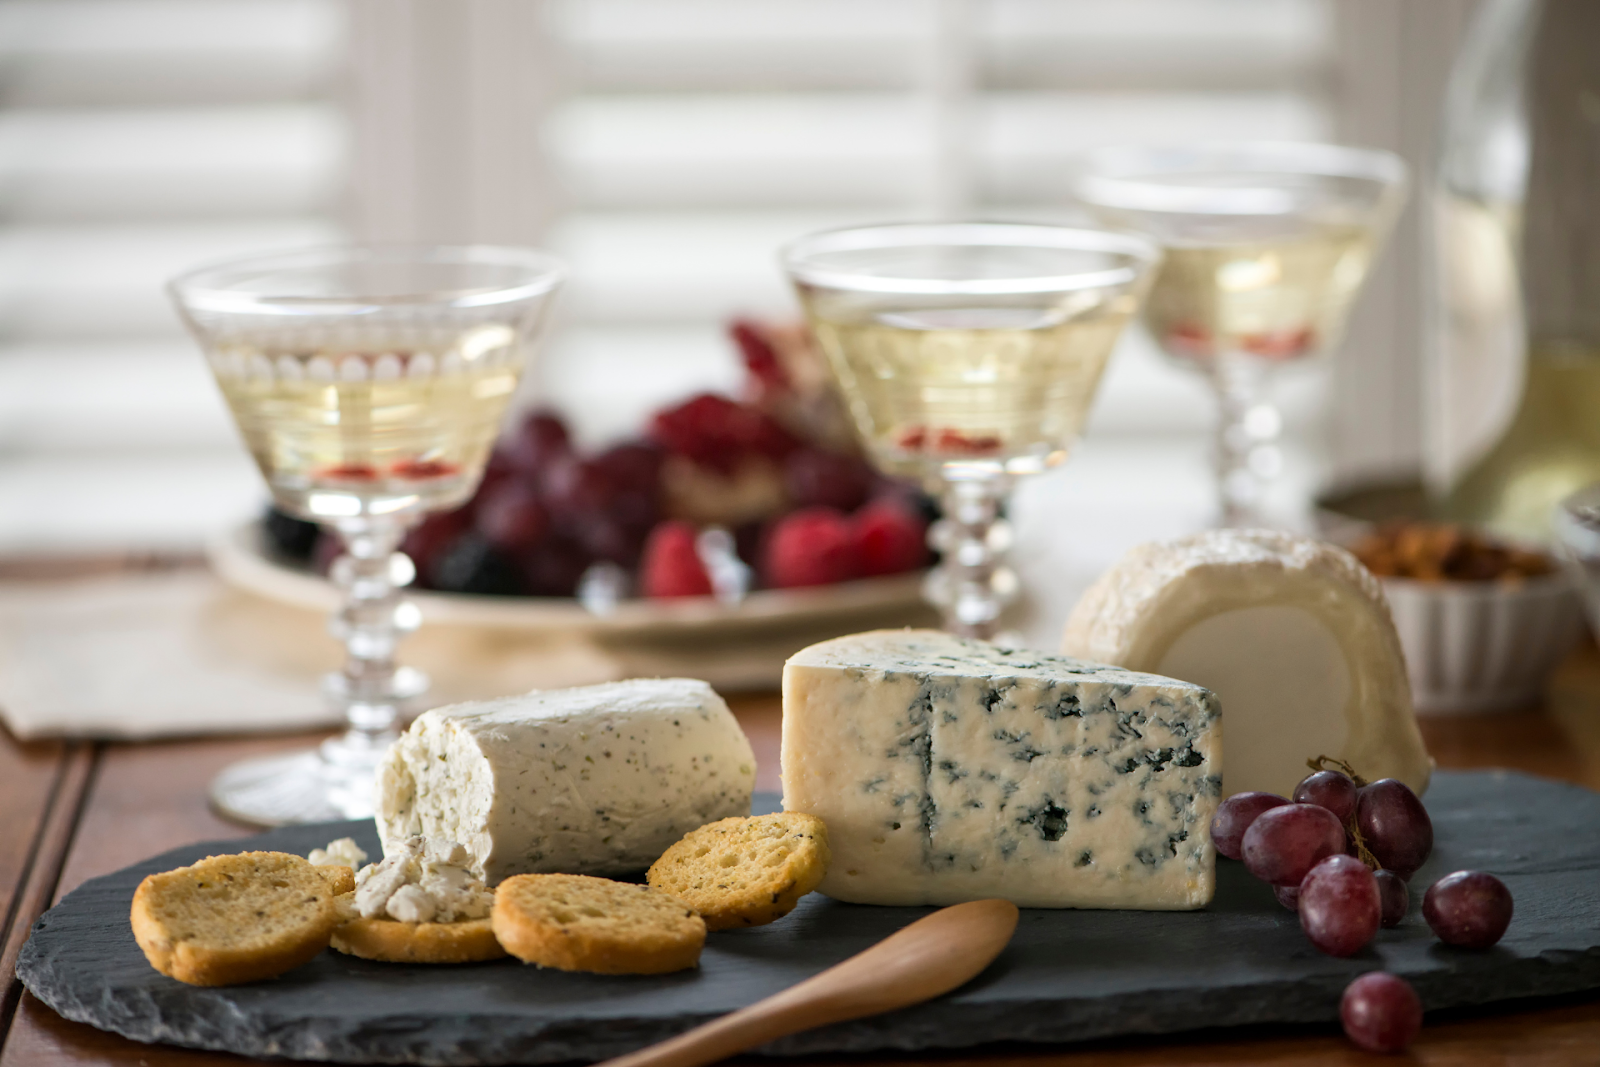 A cheese board with crackers, fruit, and cocktails